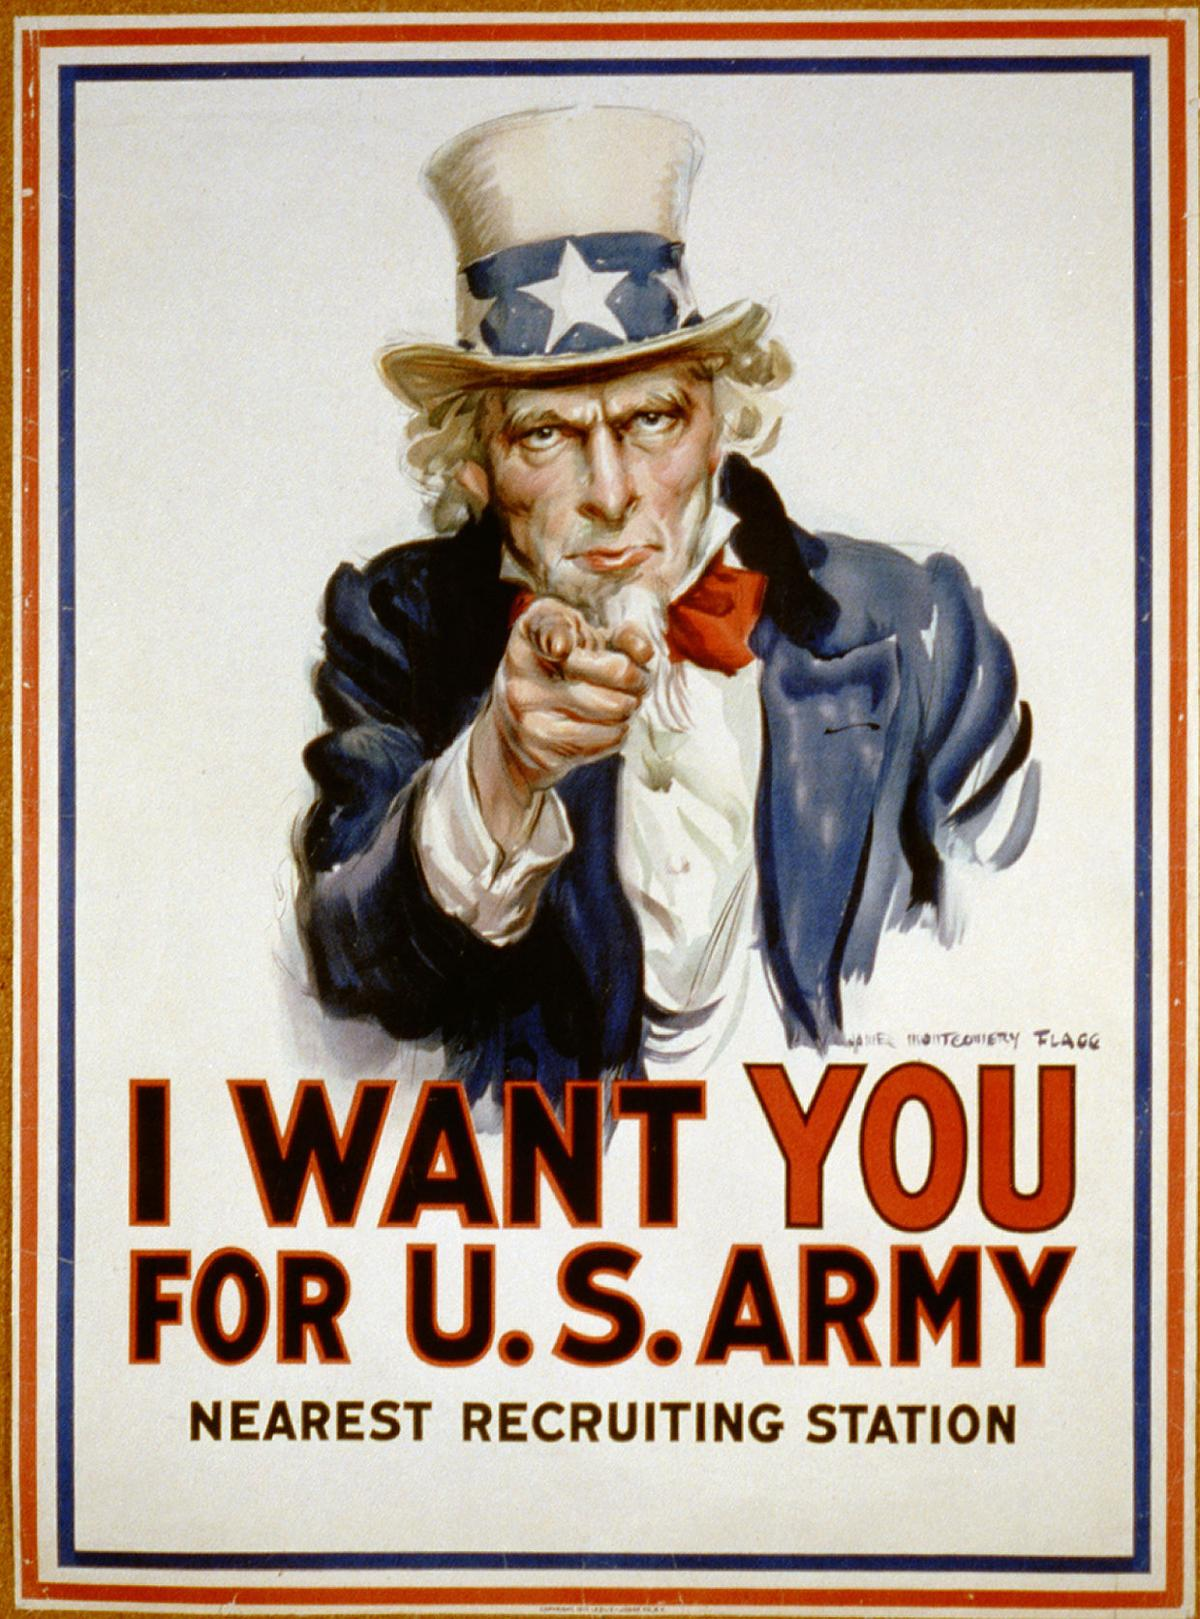 Uncle Sam Recruitment Poster: I Want You for the US Army